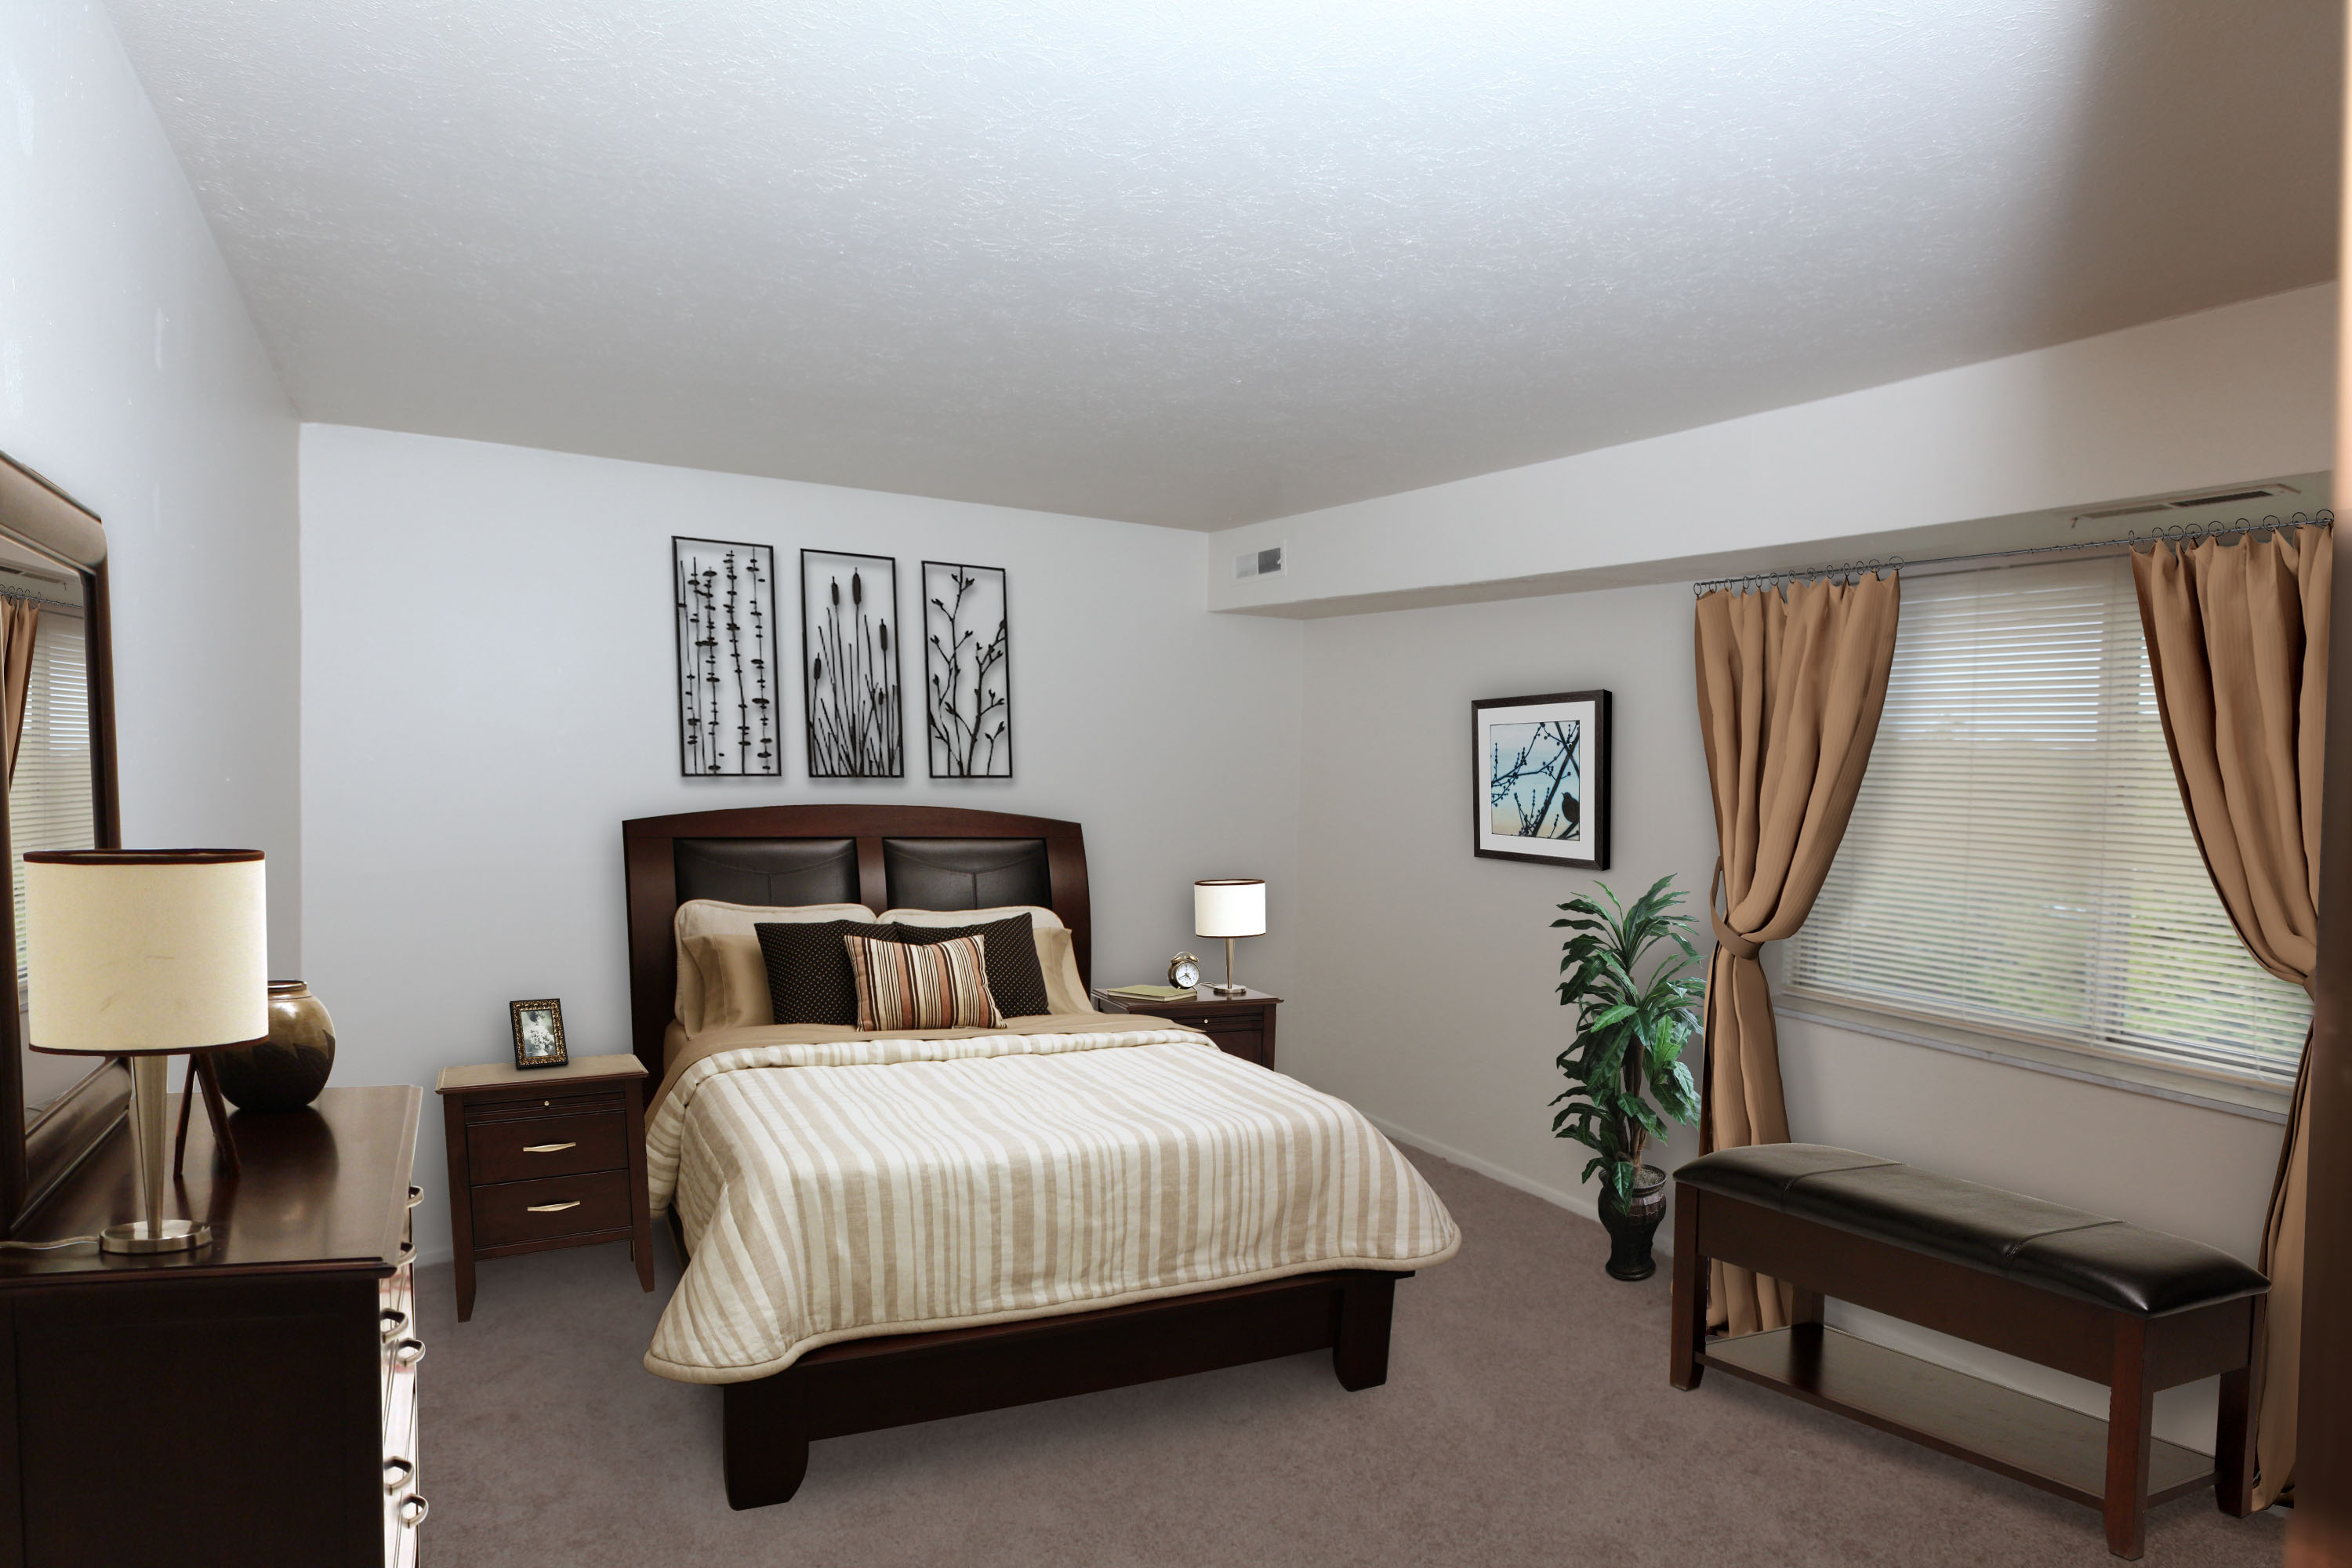 2B Bedroom #2 Furnished at the Greenridge on Euclid Apartments in Euclid, OH